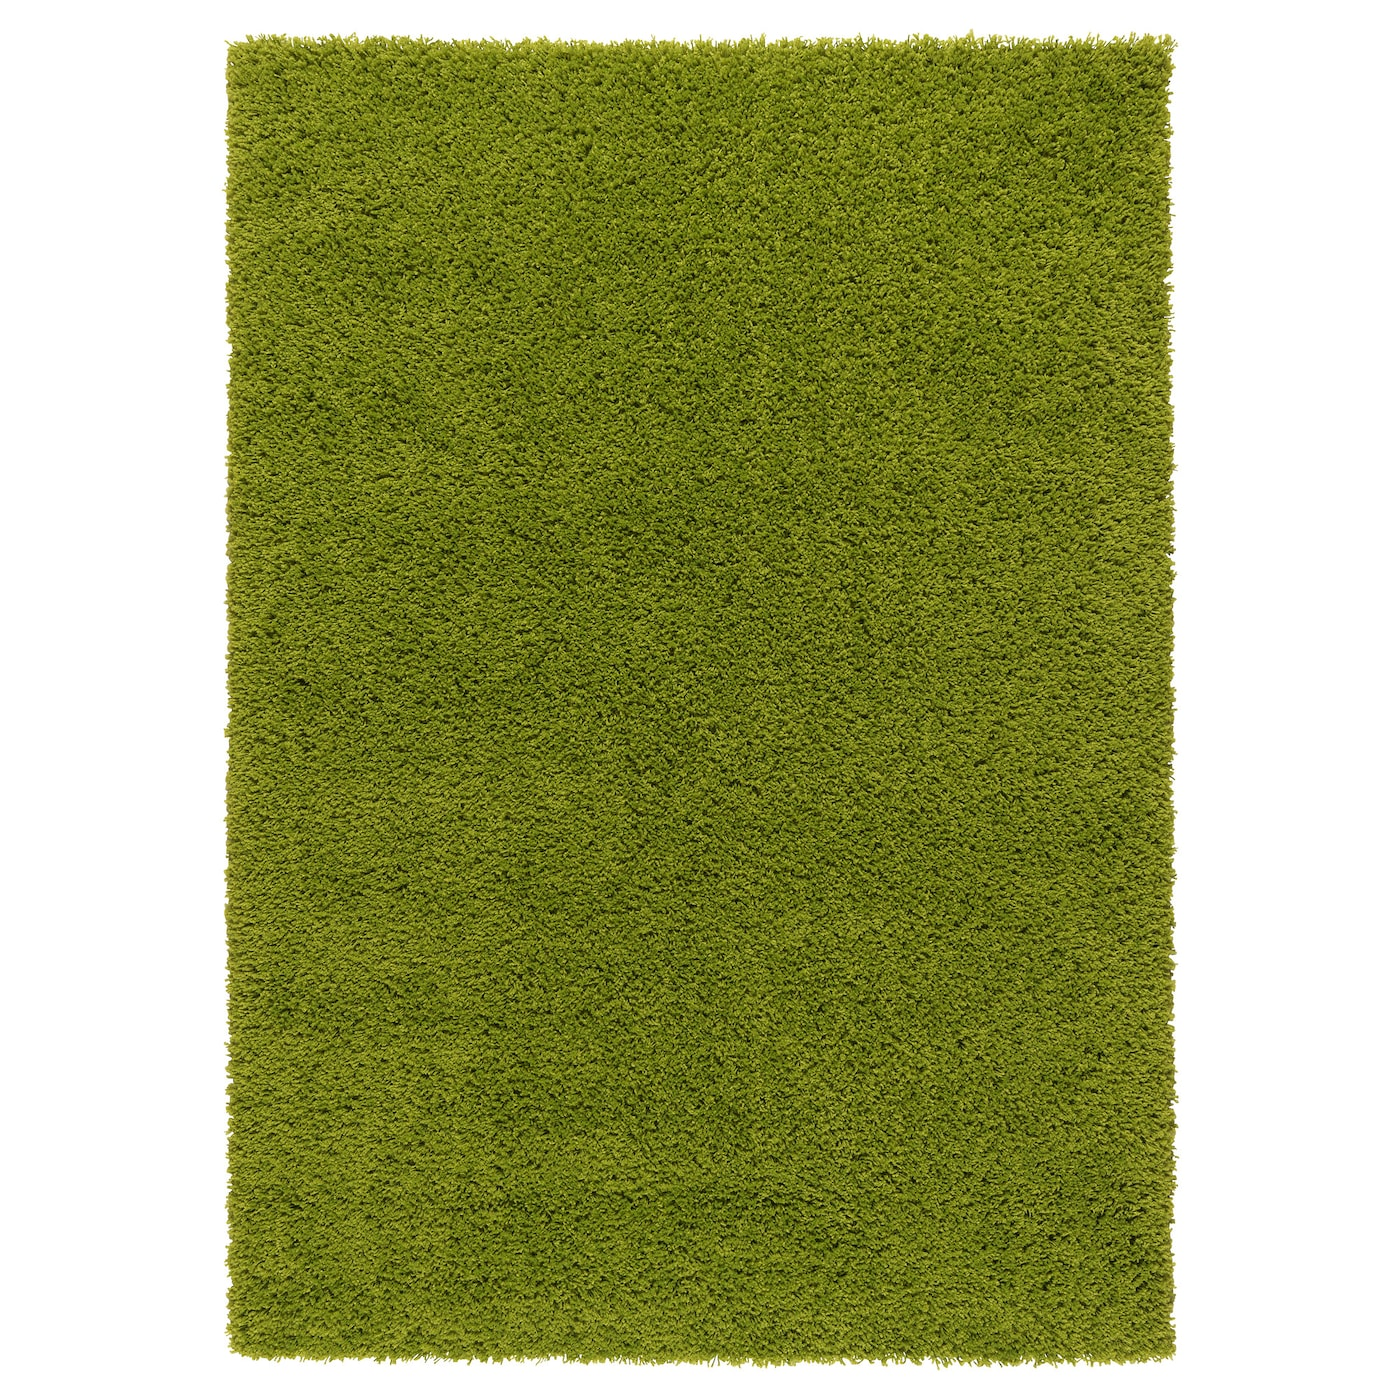 hampen rug high pile bright green 133x195 cm ikea. Black Bedroom Furniture Sets. Home Design Ideas